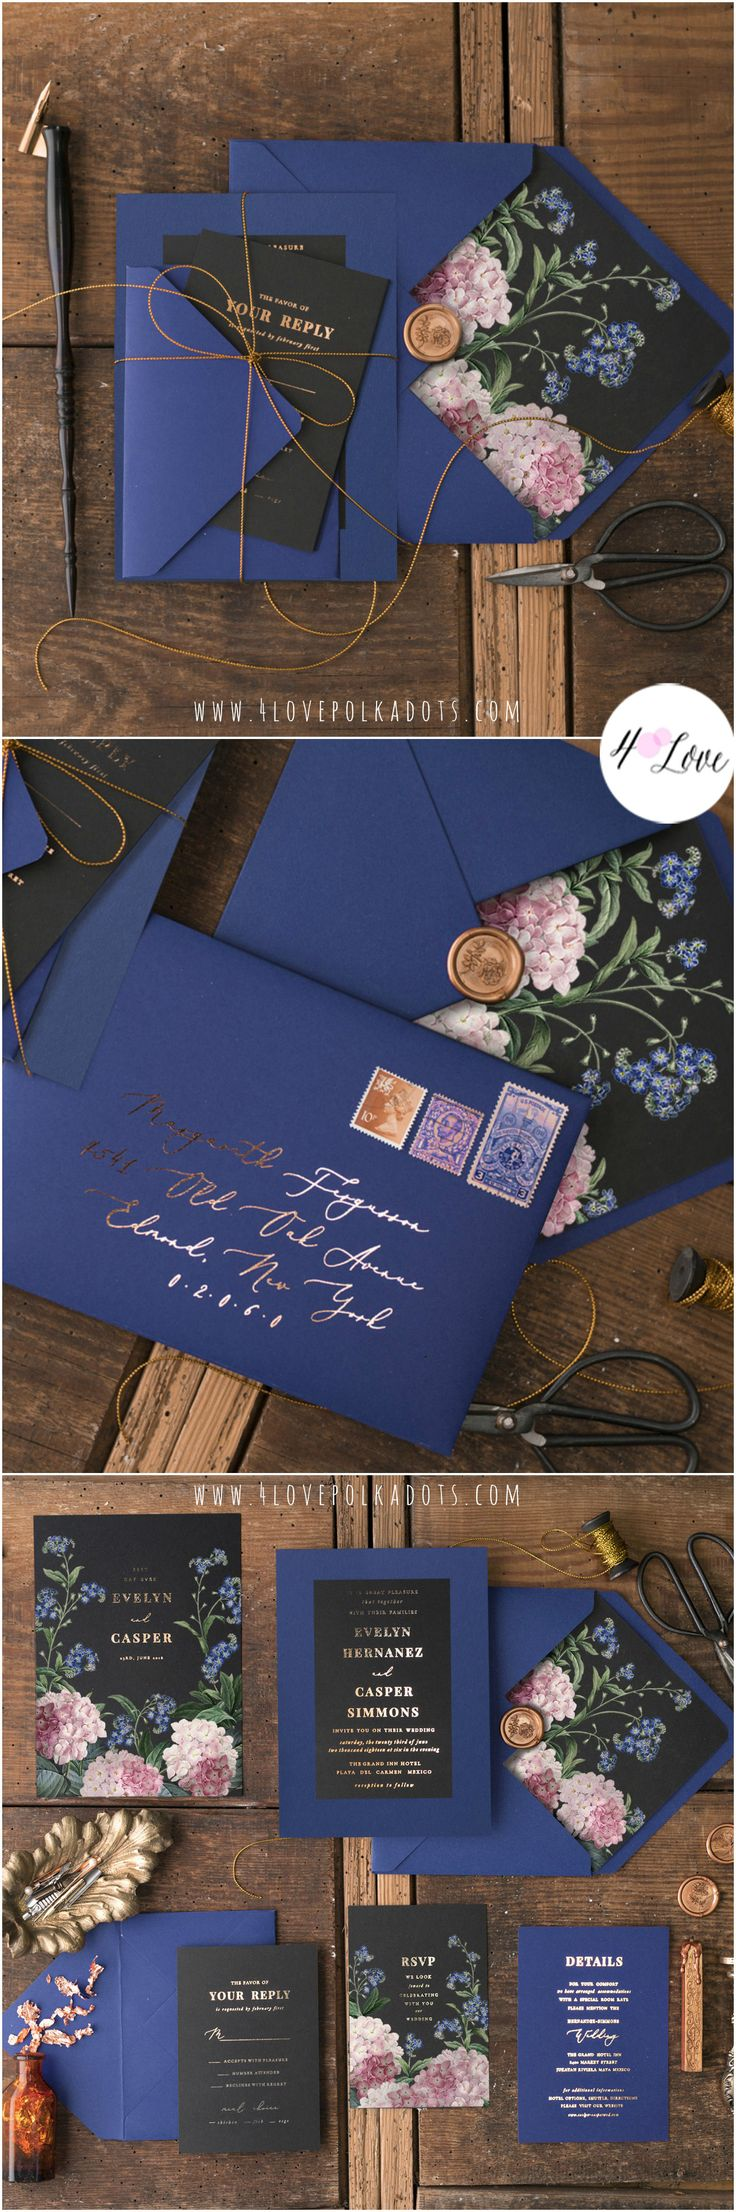 Elegant floral wedding invitations with gold foil calligraphy printing in Navy, Black & Gold color scheme. Glamorous design with touch of vintage feeling. Fully assembled with addition of a delicate gold twine #wedding